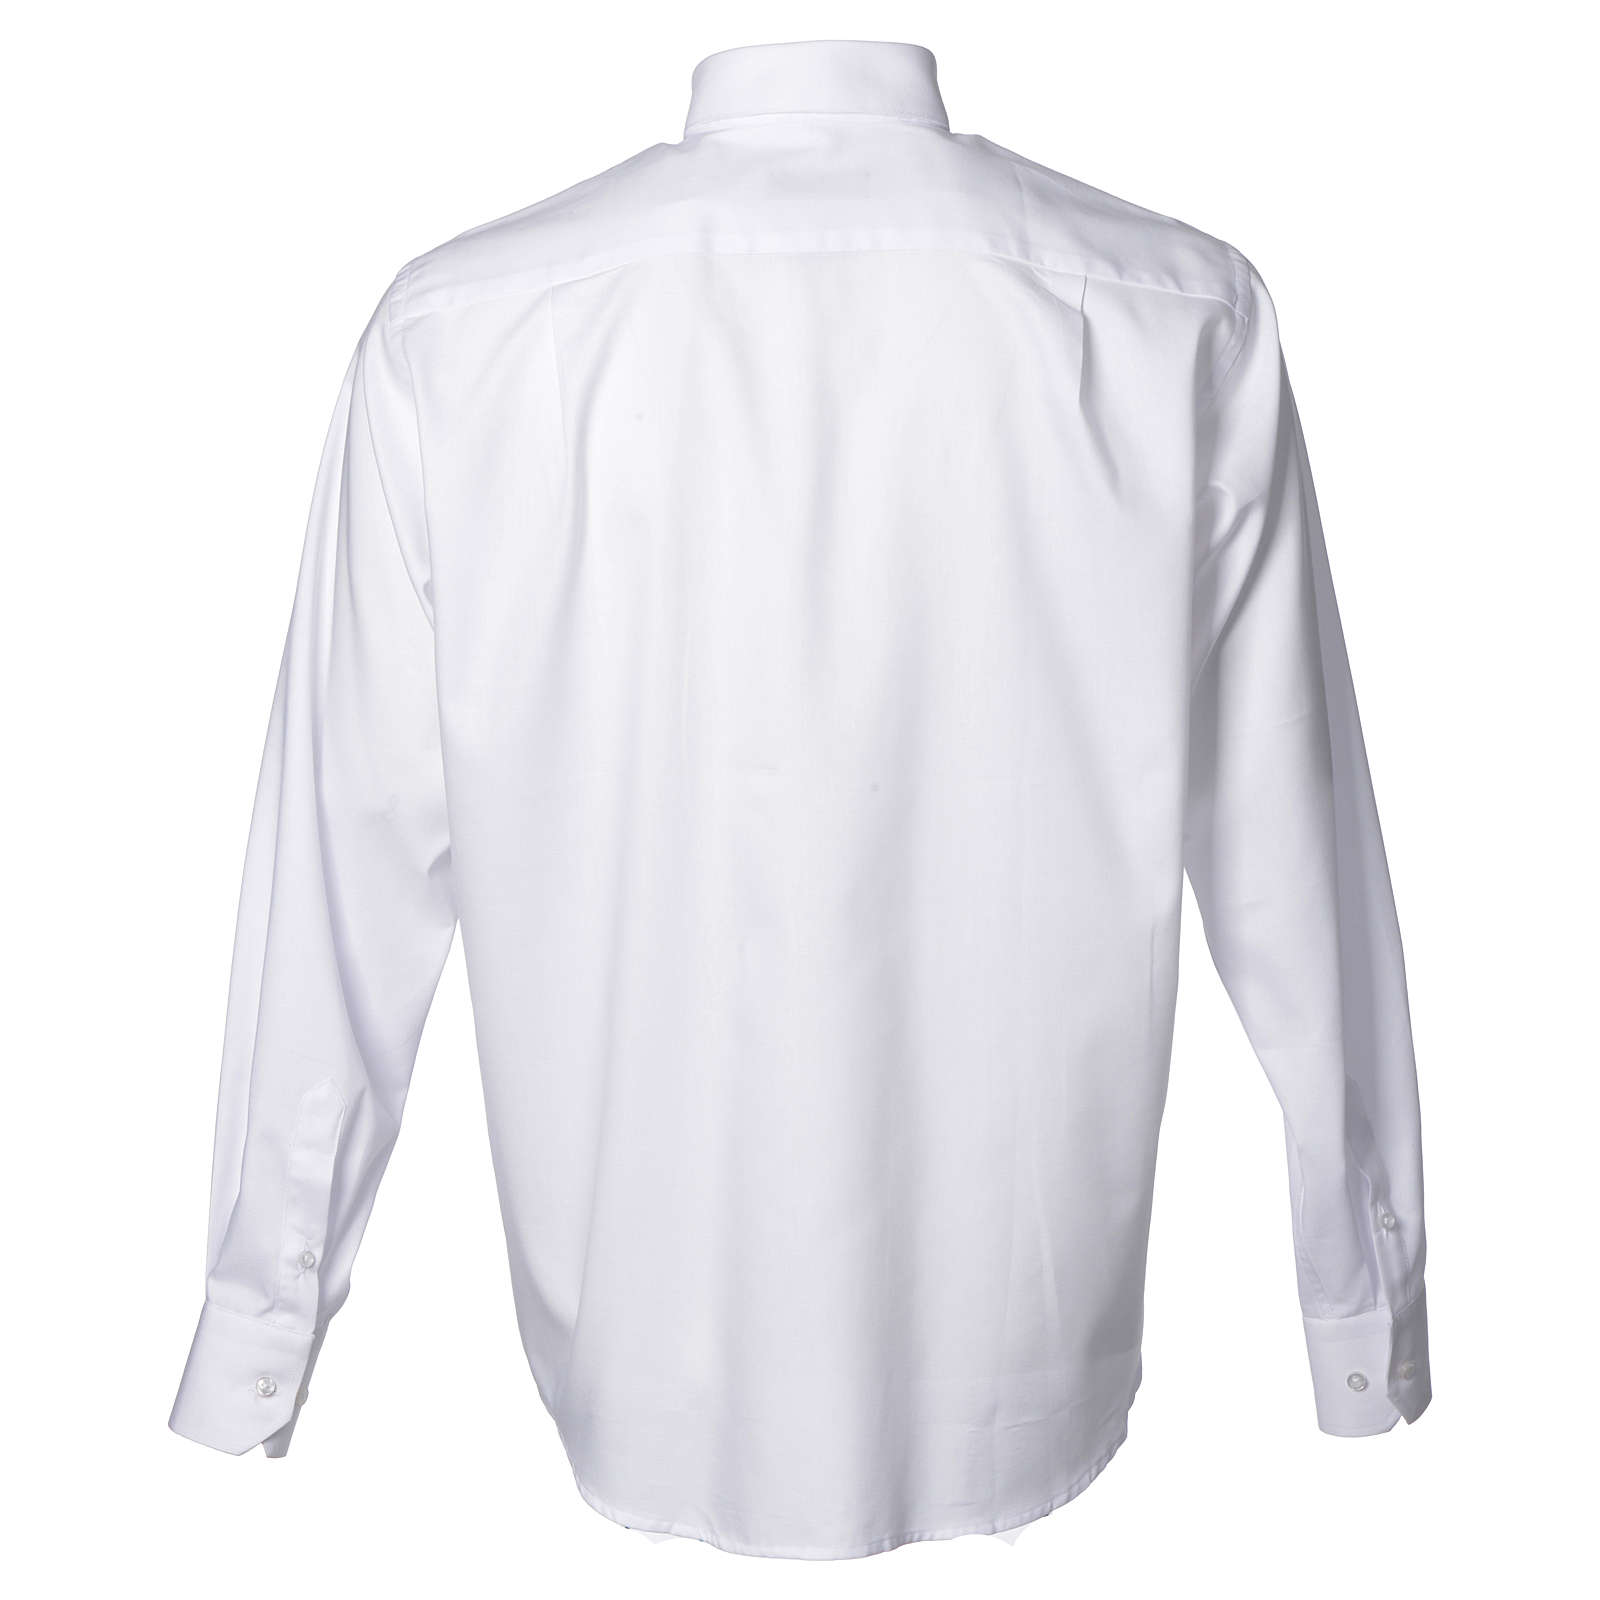 Clergy shirt with long sleeves, easy to iron, white mixed cotton 4